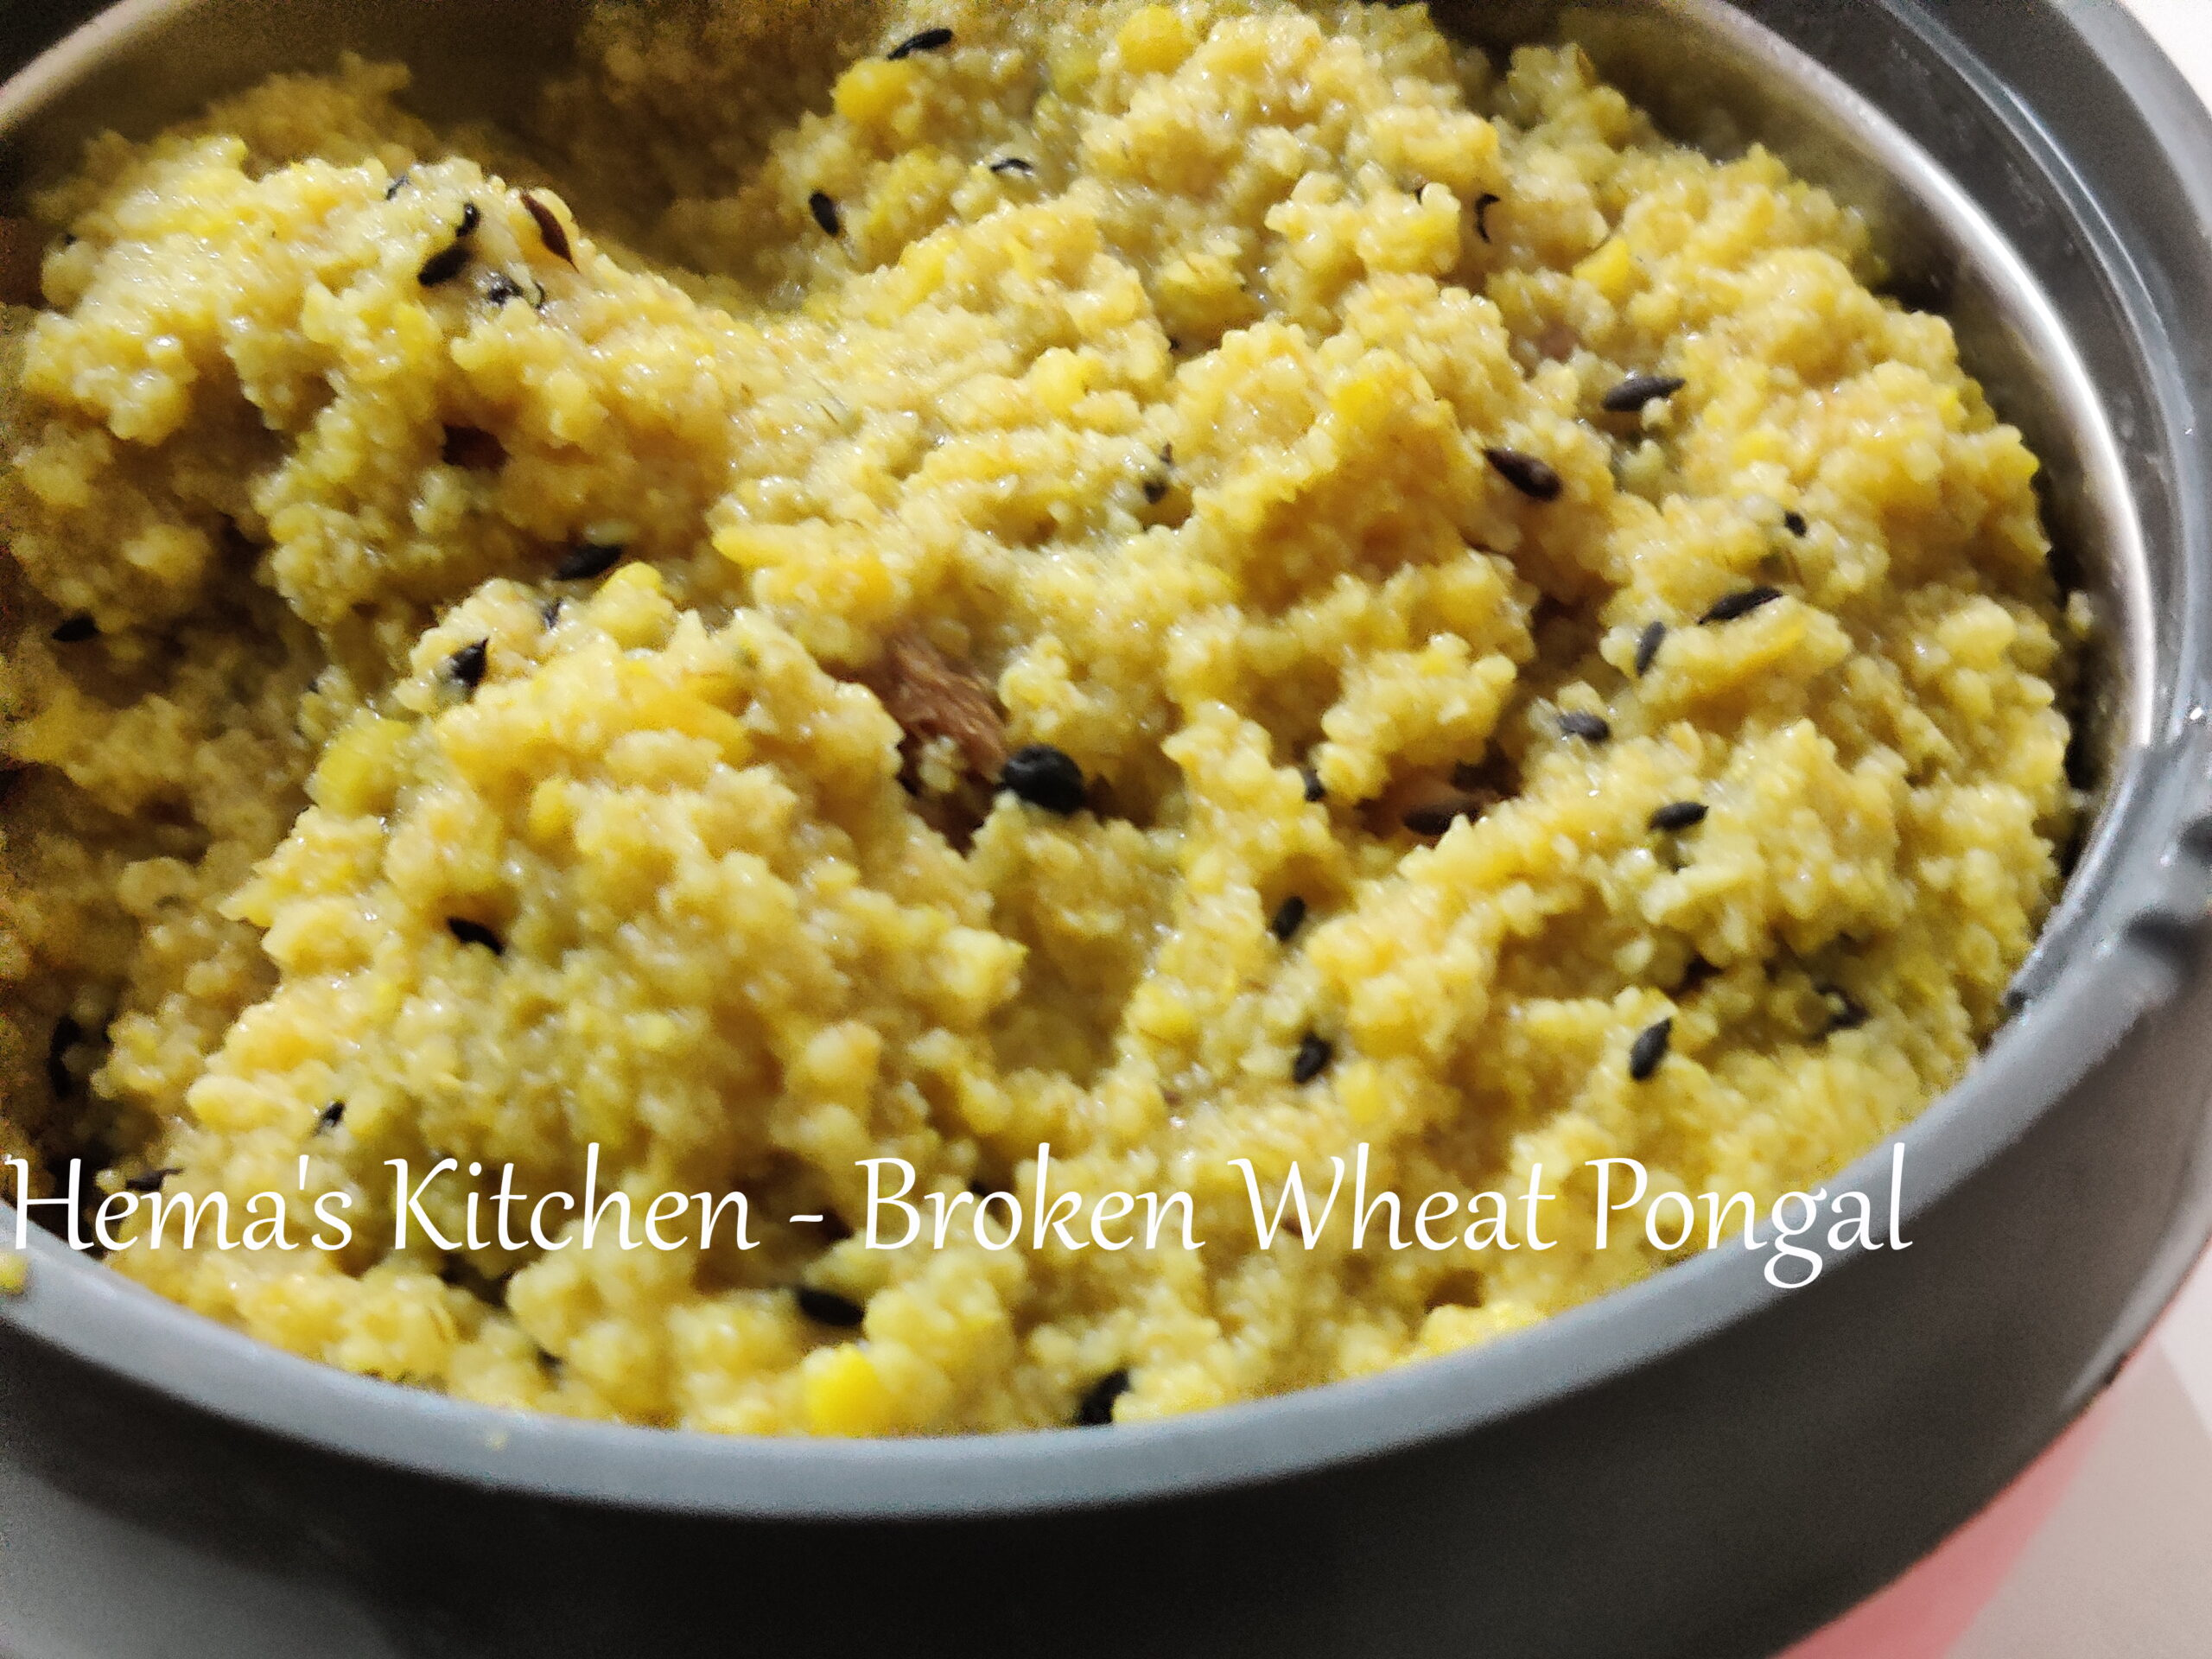 Pongal made from broken wheat